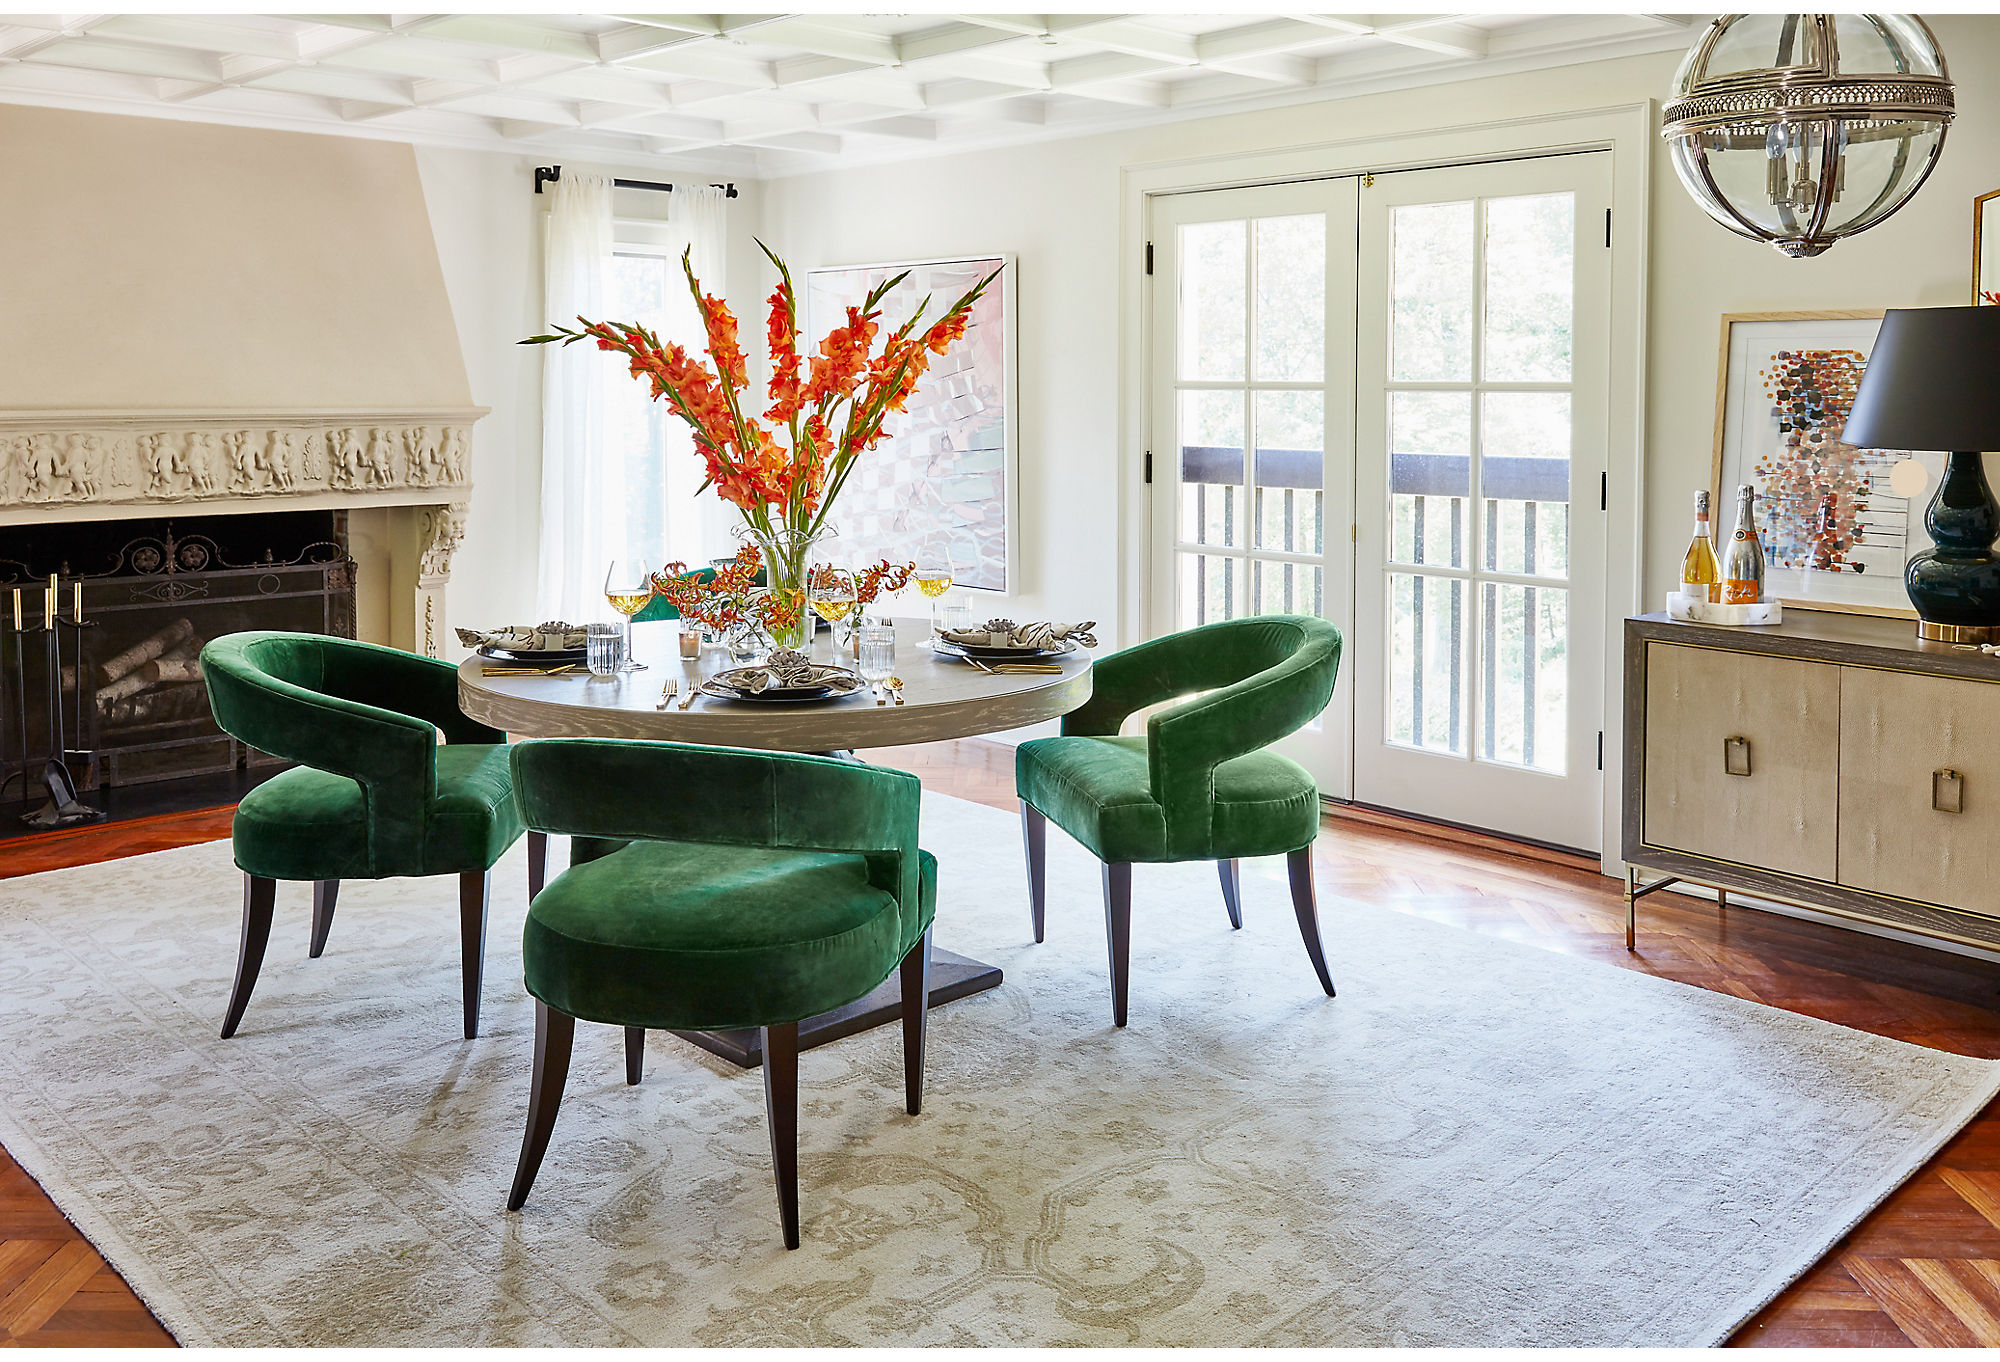 The rich color and modern silhouette of the Ella Accent Chairs in Emerald Velvet provide a dynamic contrast to the serenity of the neutral traditional rug. The chairs' curves also complement the straight lines of the Lexi Sideboard.